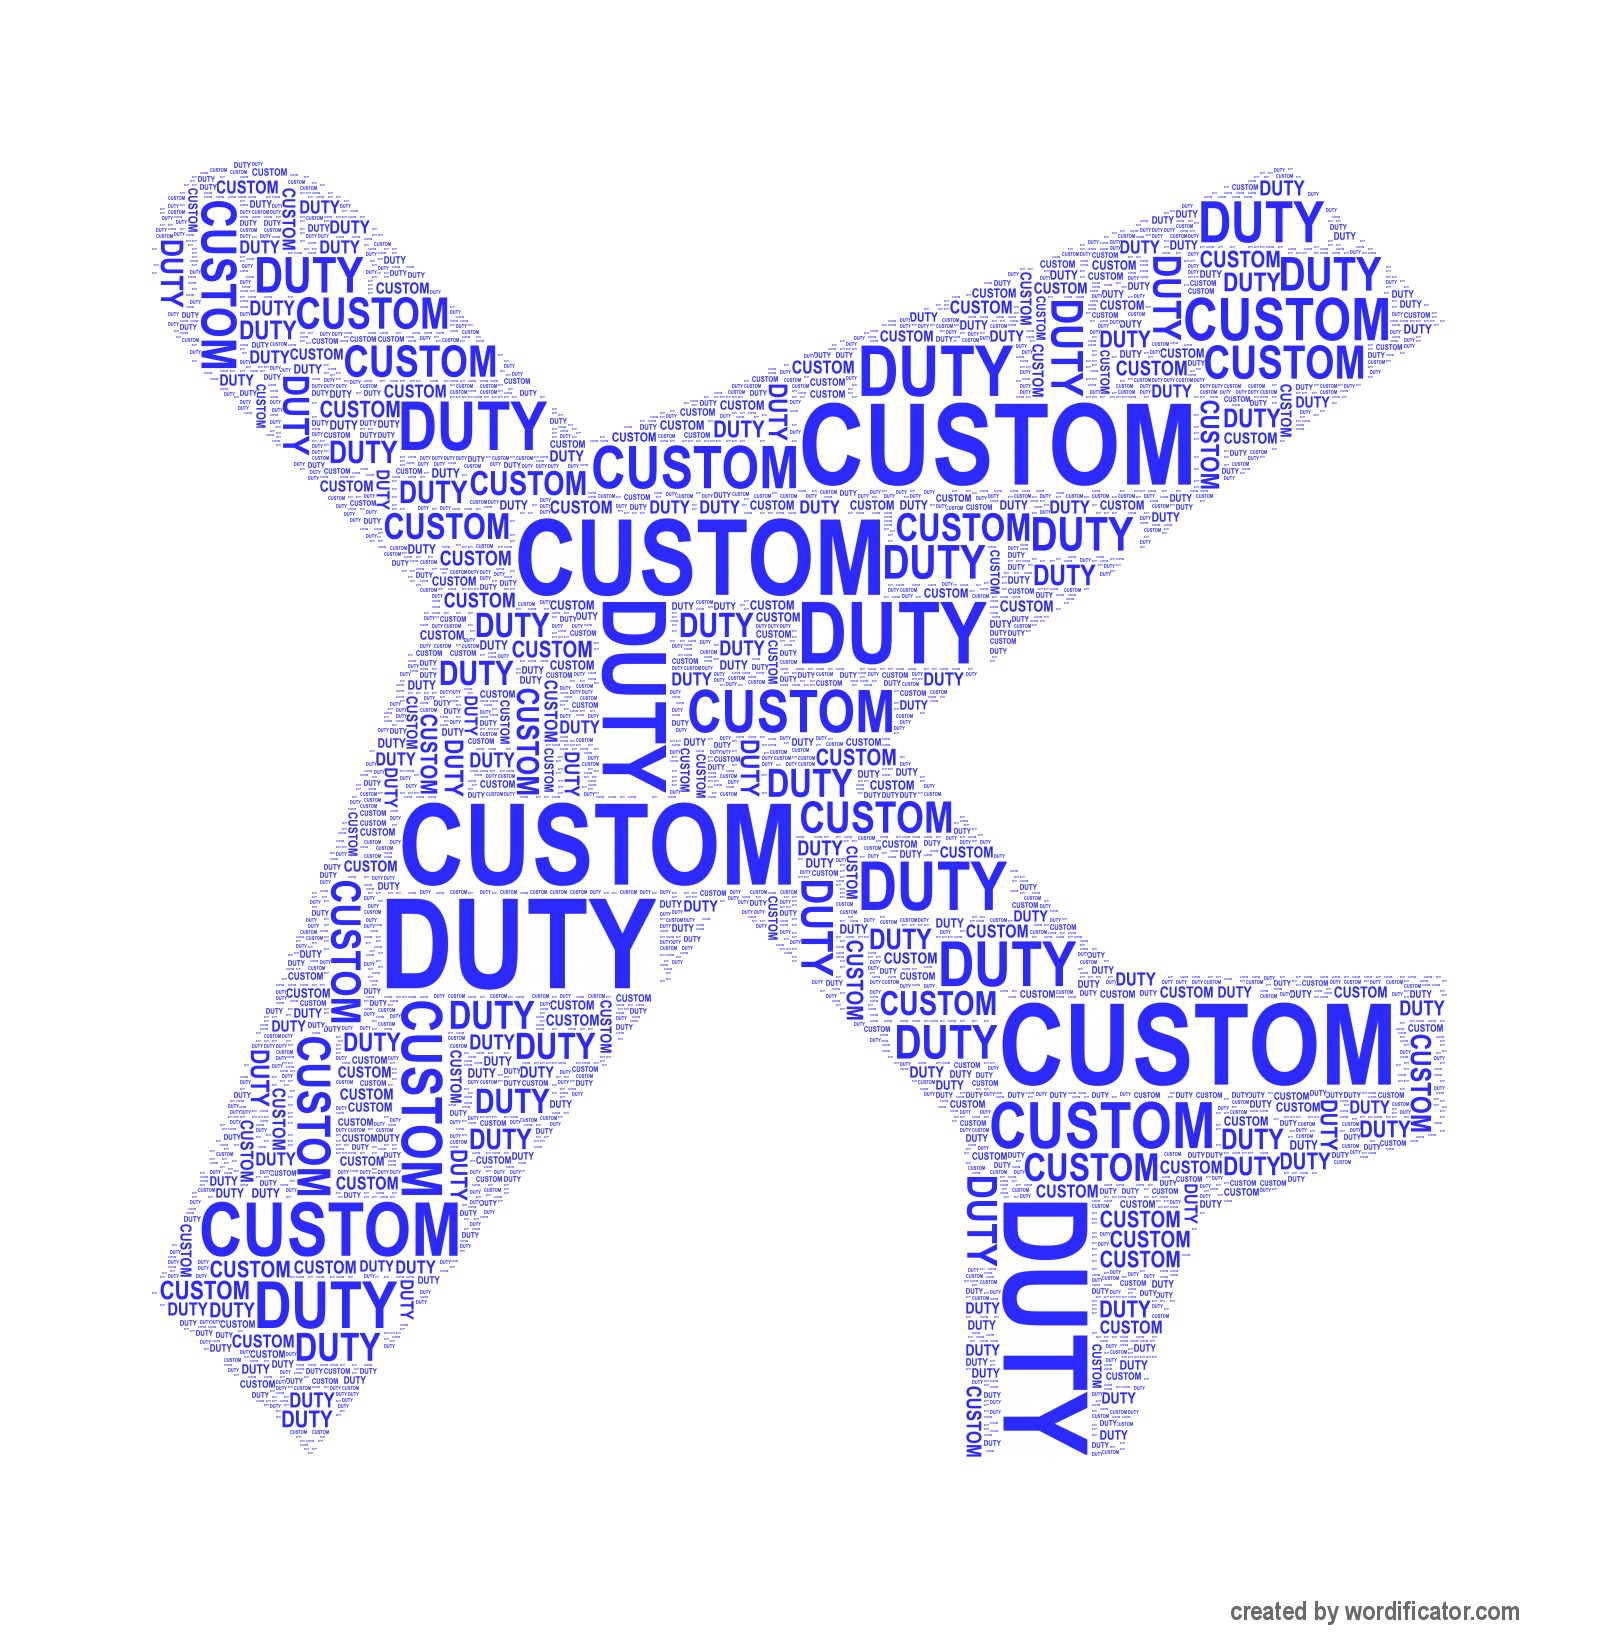 Custom Duty Online Income